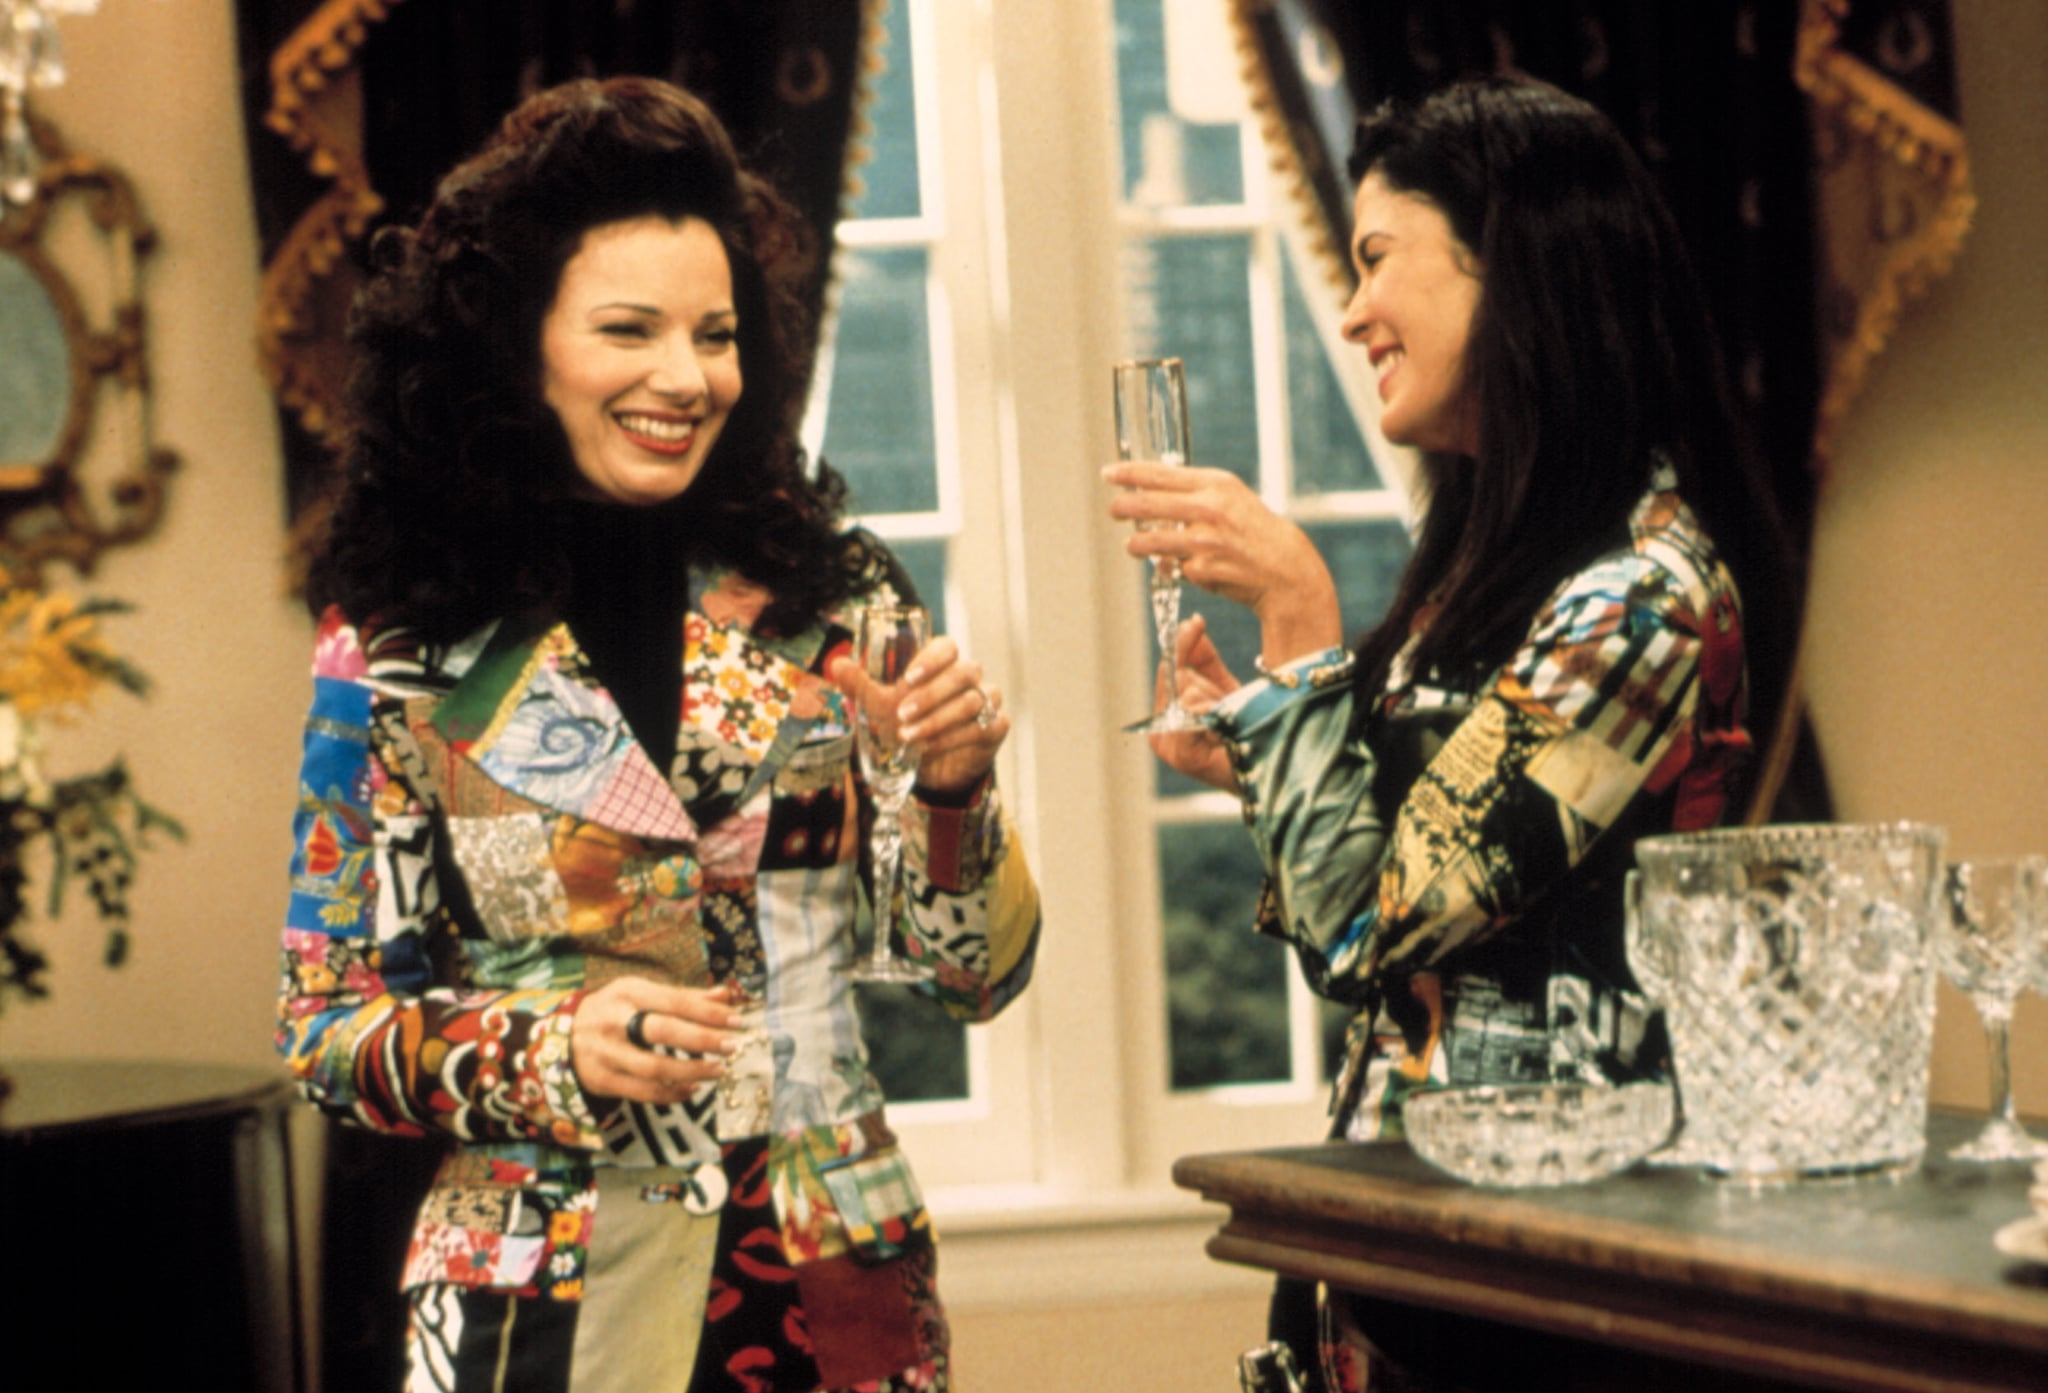 THE NANNY, Fran Drescher, Maria Conchita Alonso, season 5, 1993-99, episode 'Immaculate Concepcion' aired 4/1/98, (c)CBS Television/courtesy Everett Collection